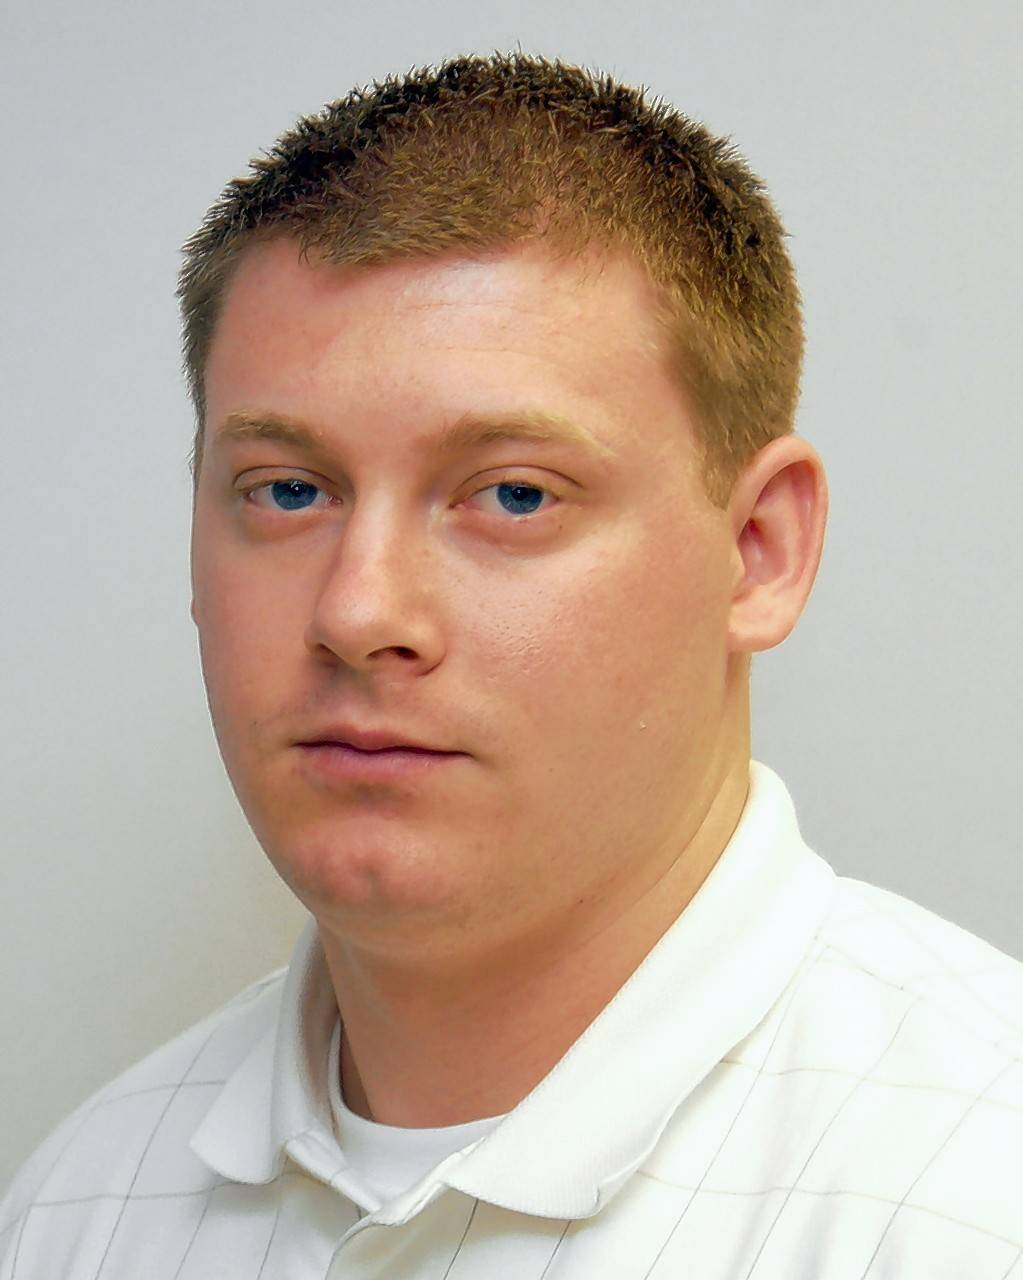 Lake County Sheriff's Deputy Justin Hill